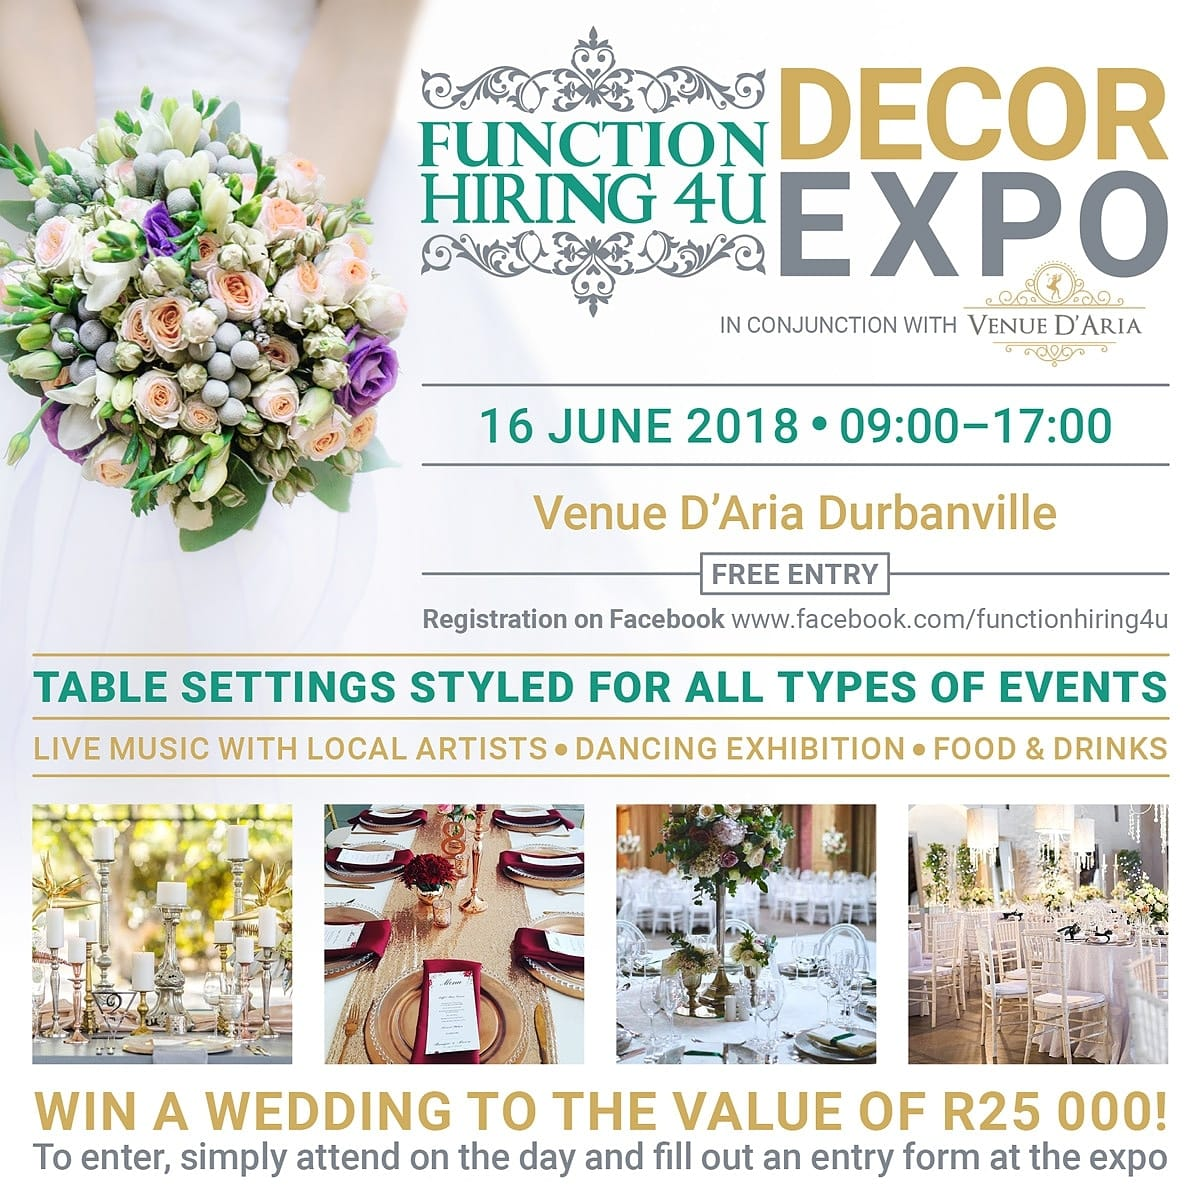 Function Hiring 4U Decor Expo